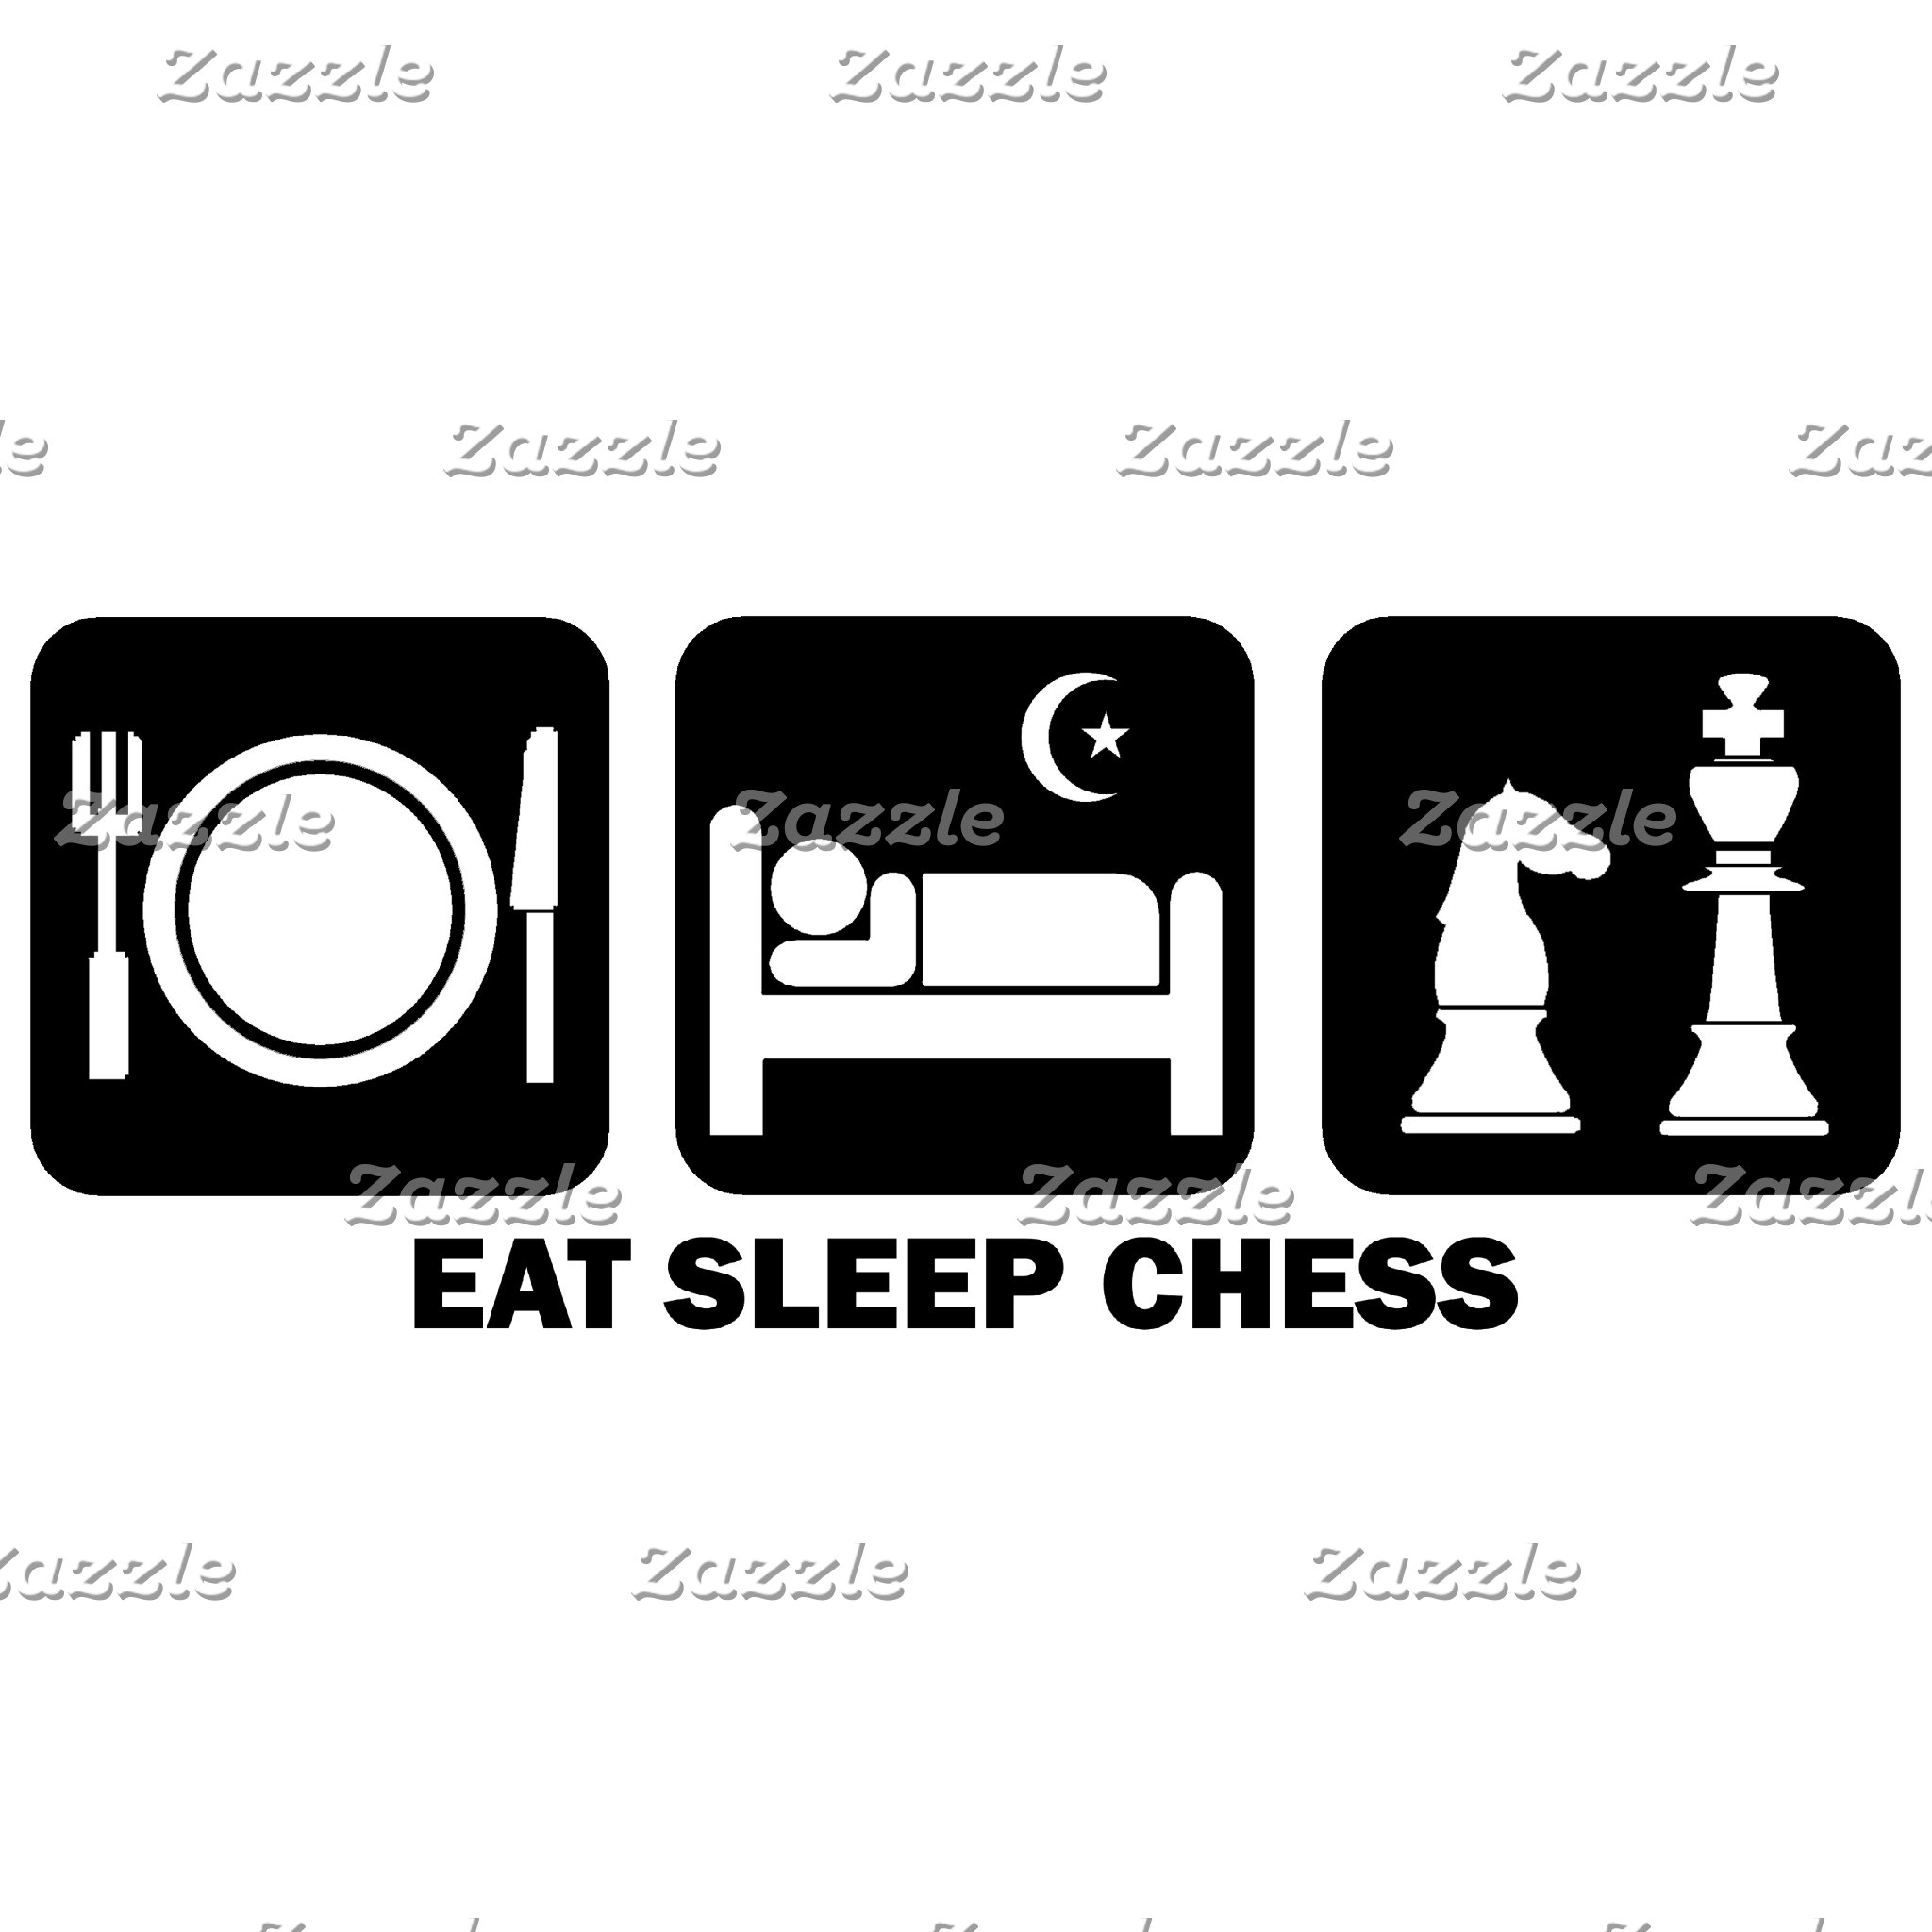 eat sleep chess